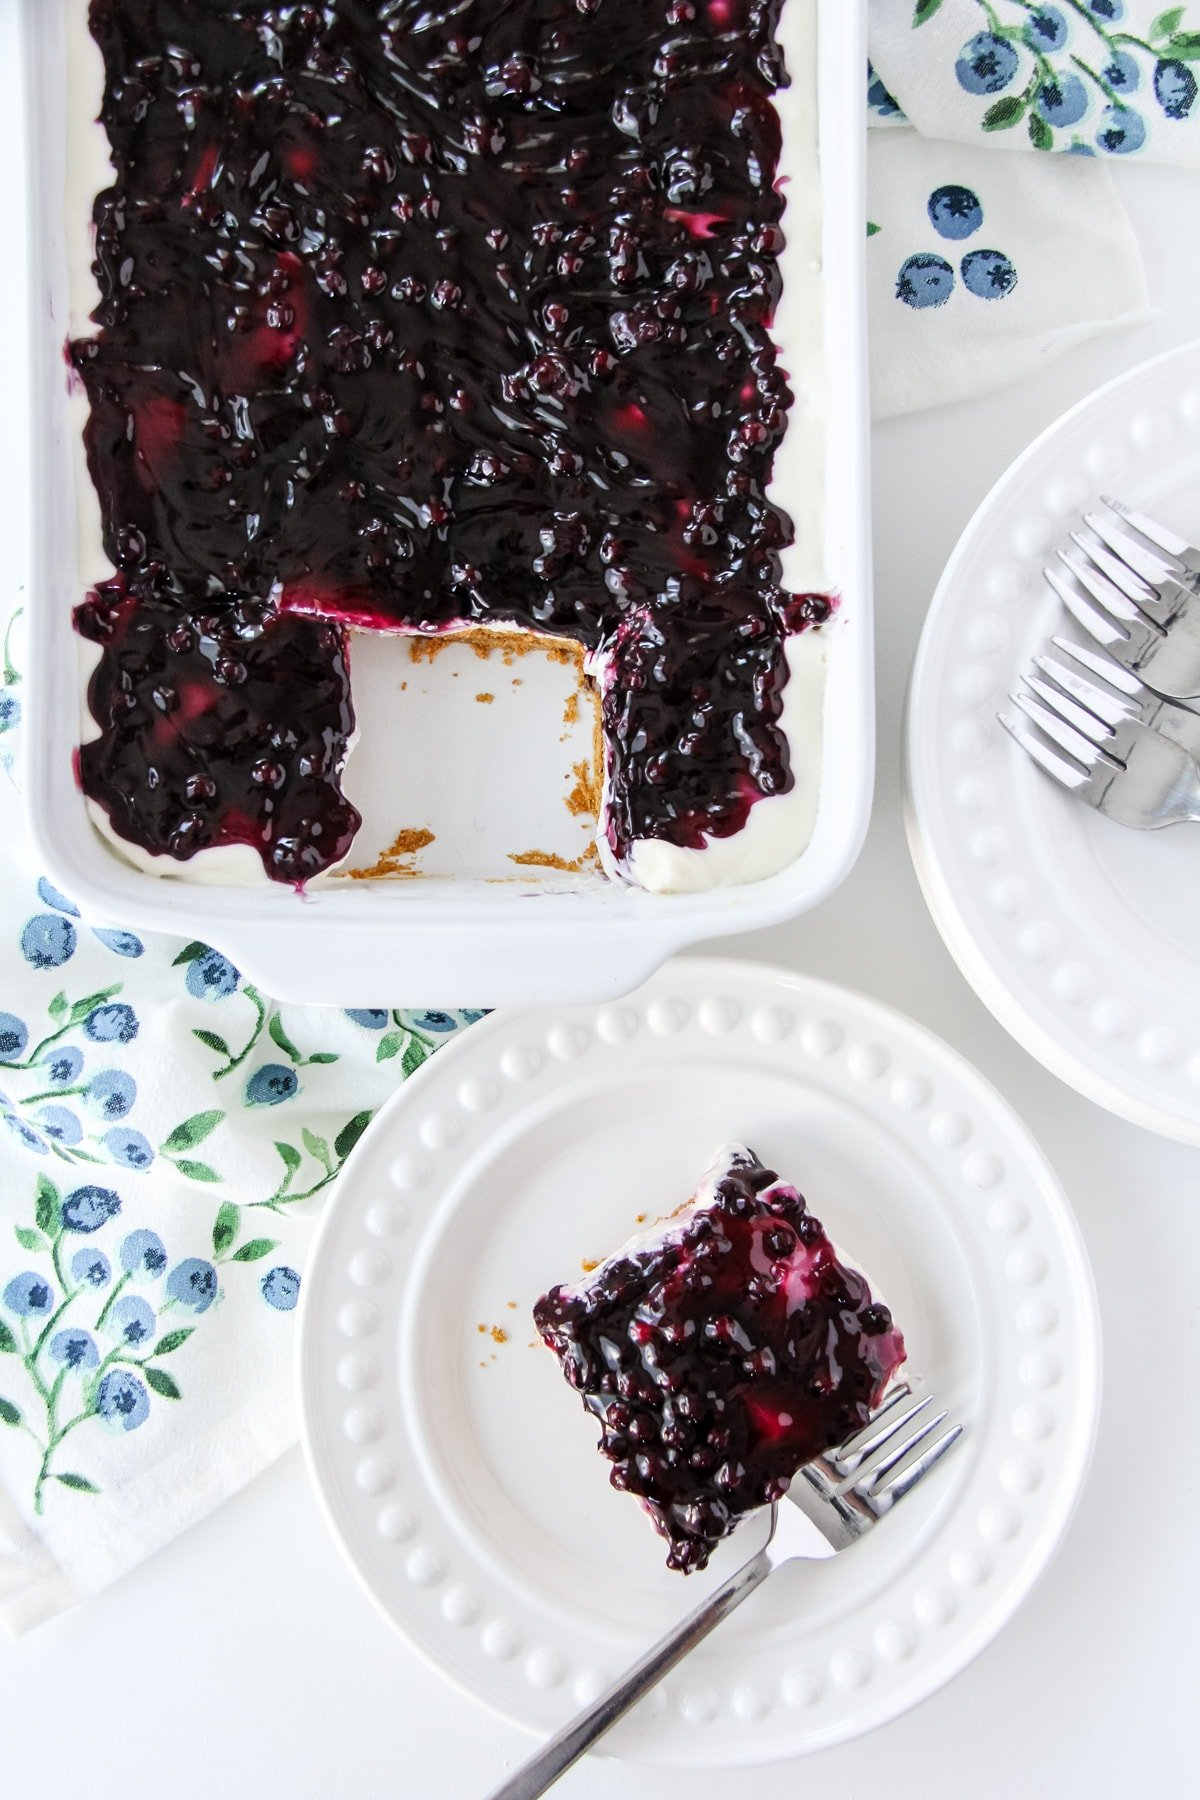 Easy No Bake Blueberry Cheesecake Dessert